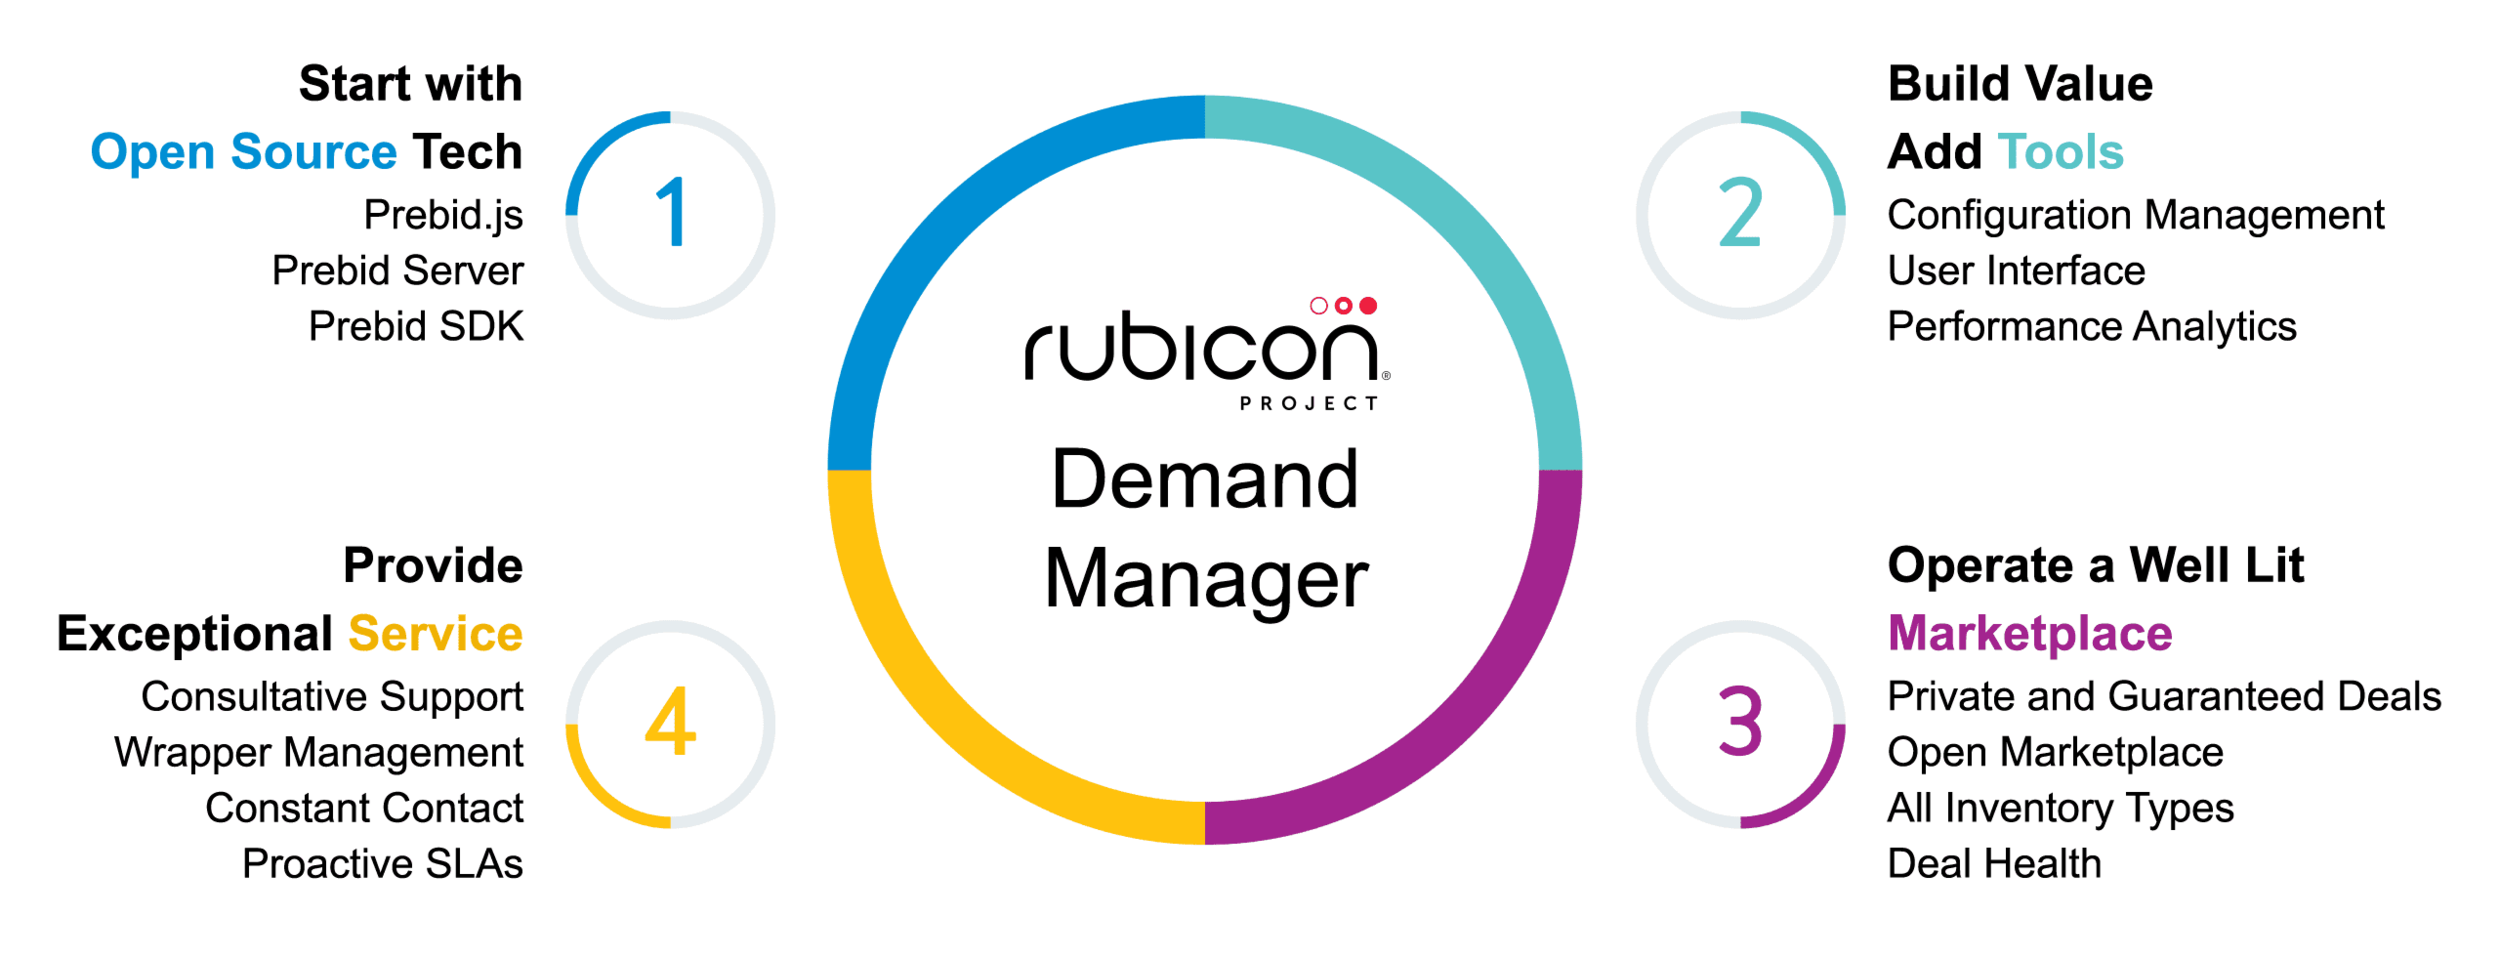 Key features of Rubicon Project's Demand Manager